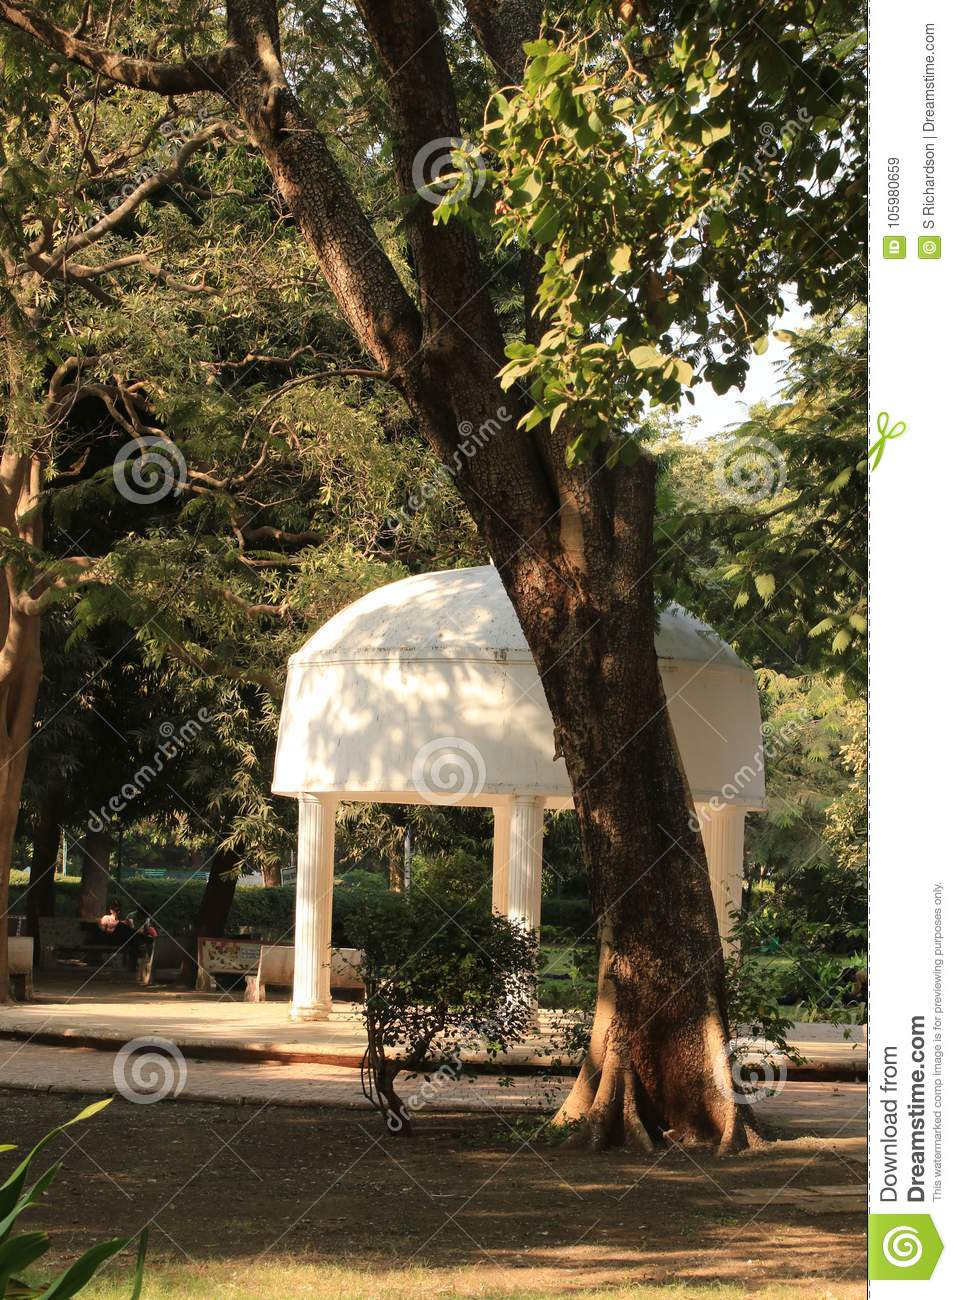 Band Stand in Law Gardens stock image. Image of famous - 105980659